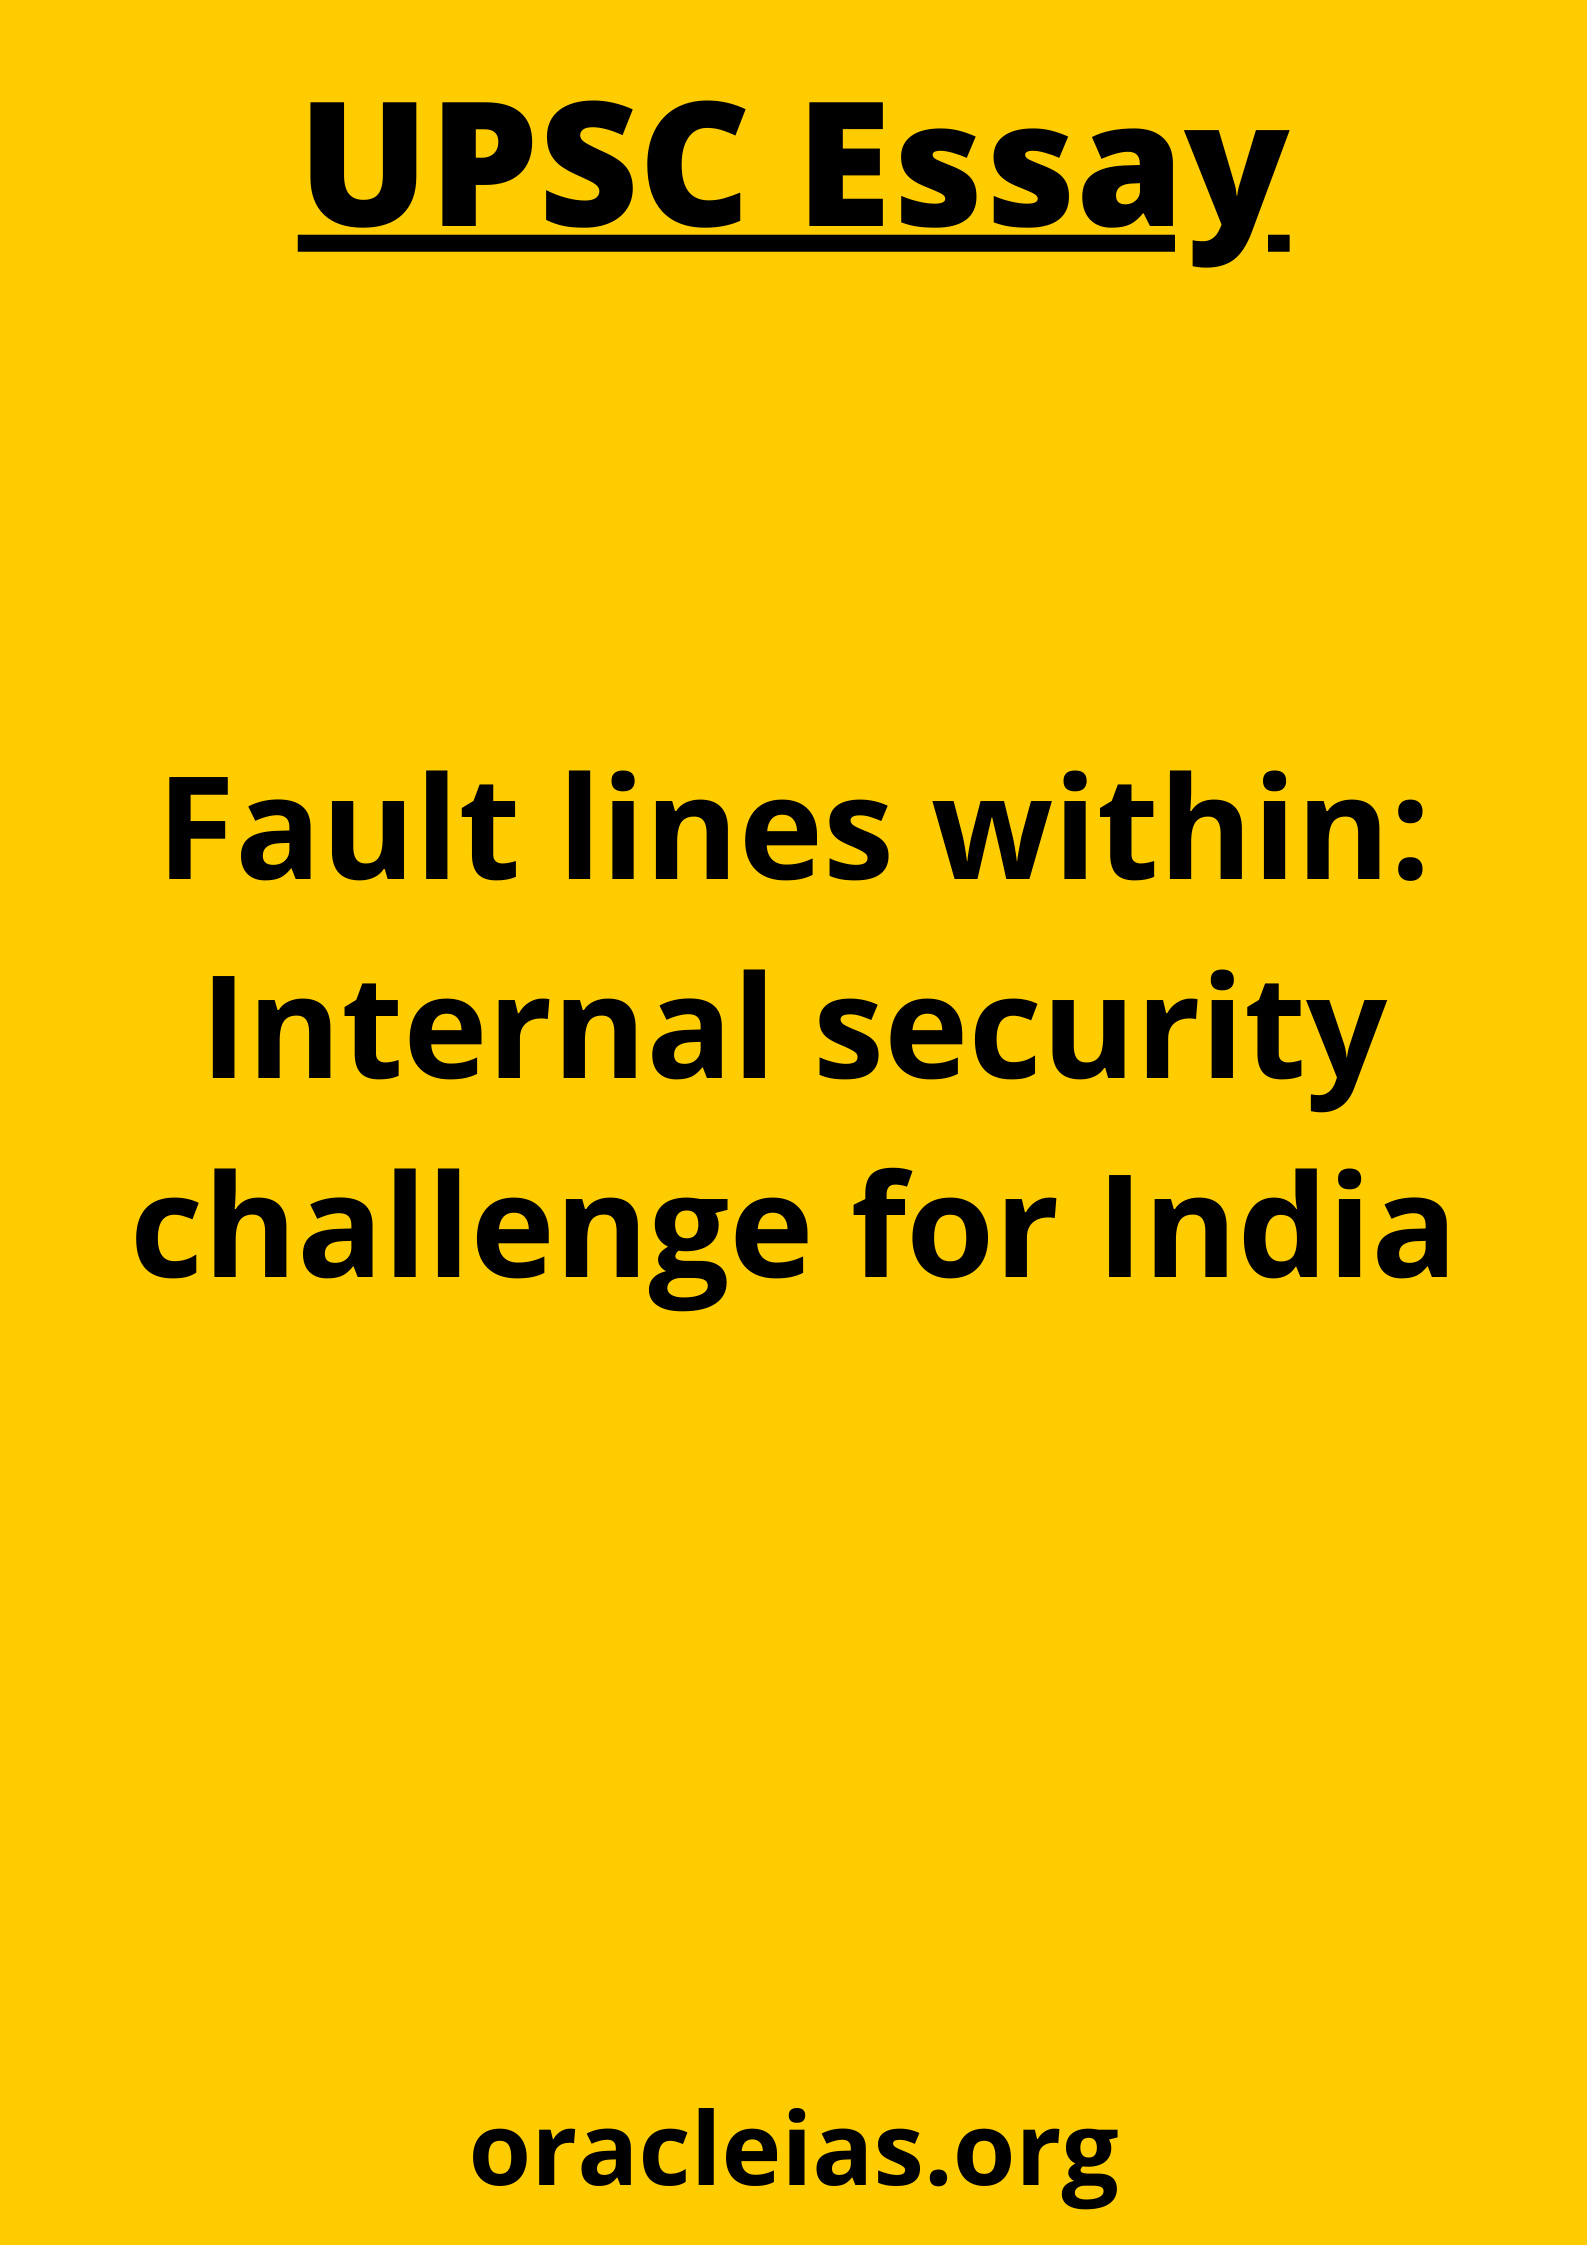 Internal security challenge for India